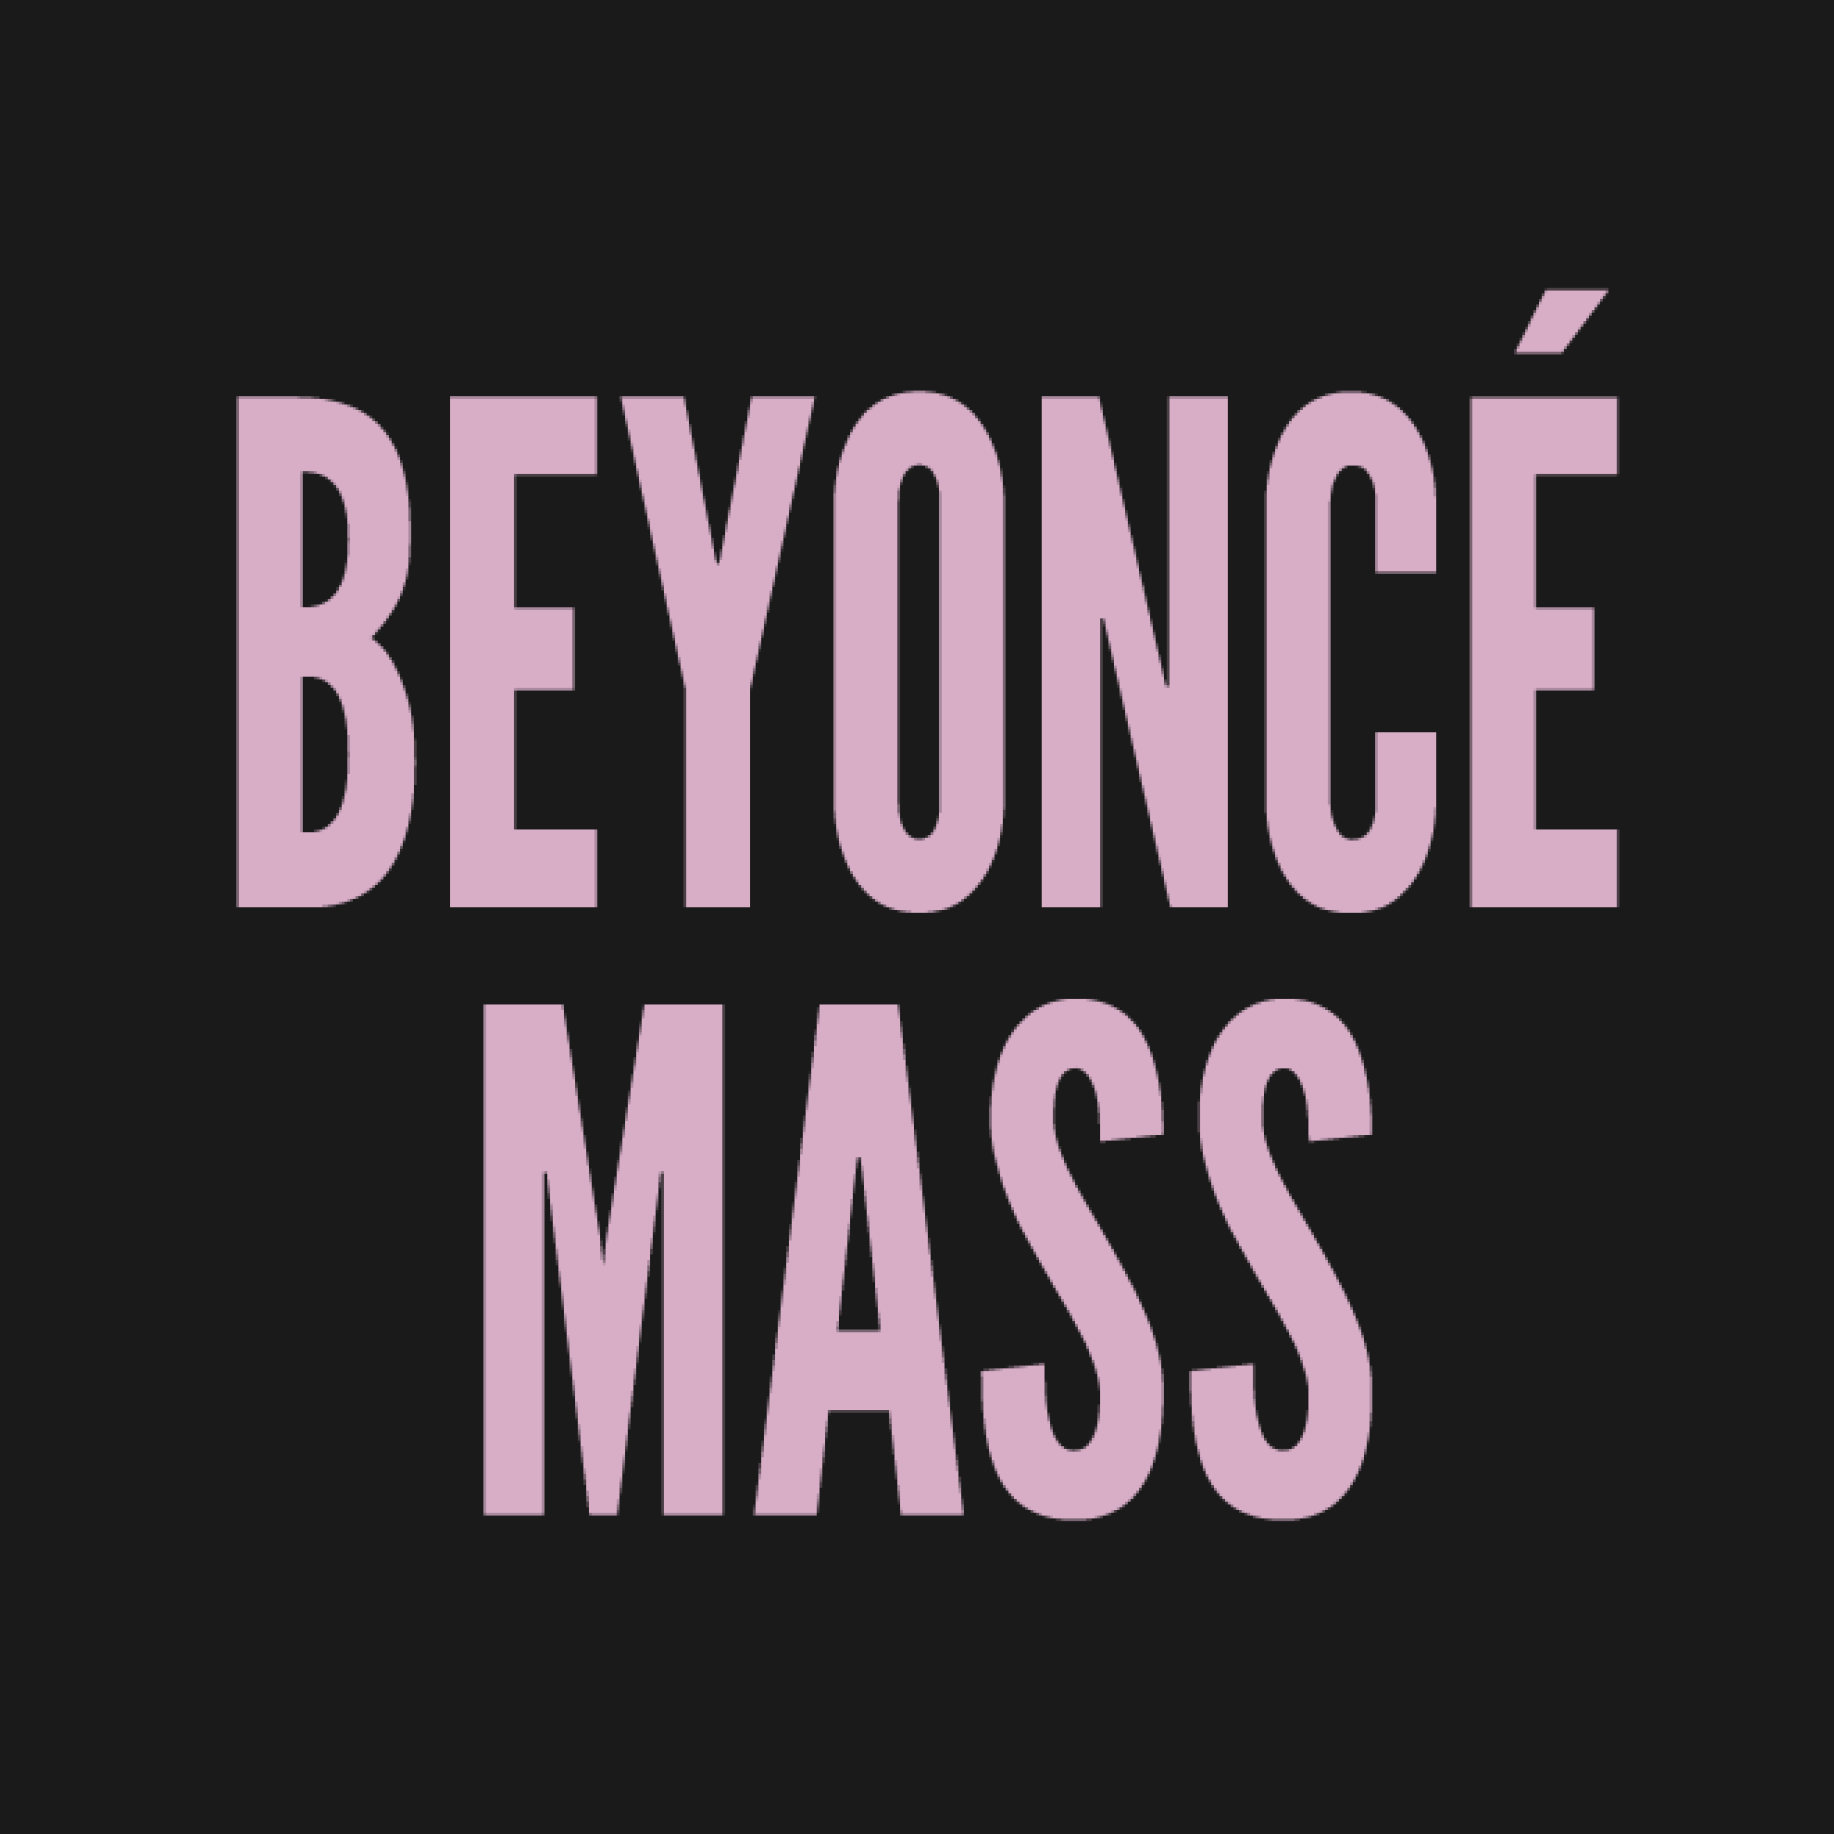 Beyoncé Mass: Brooklyn @ First Presbyterian Church of Brooklyn | New York | United States